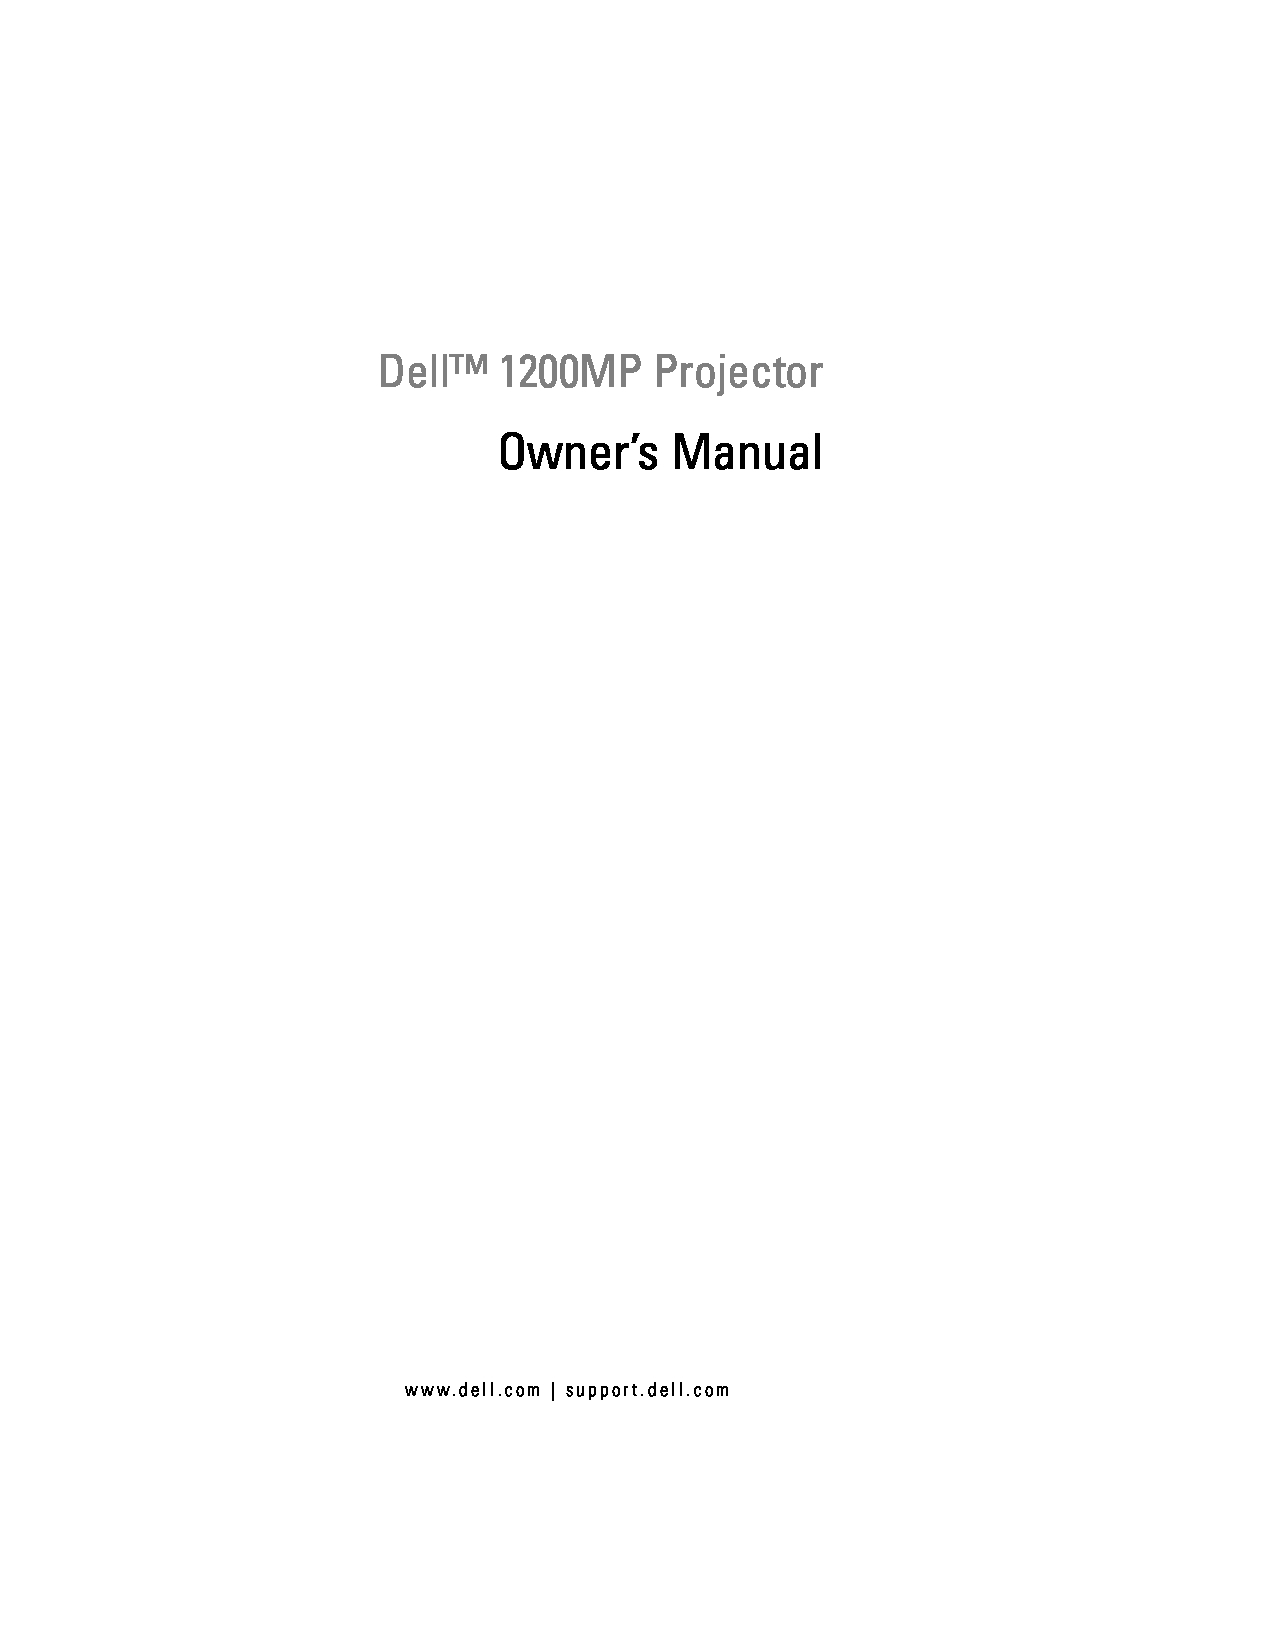 Dell 1200MP Owner Manual